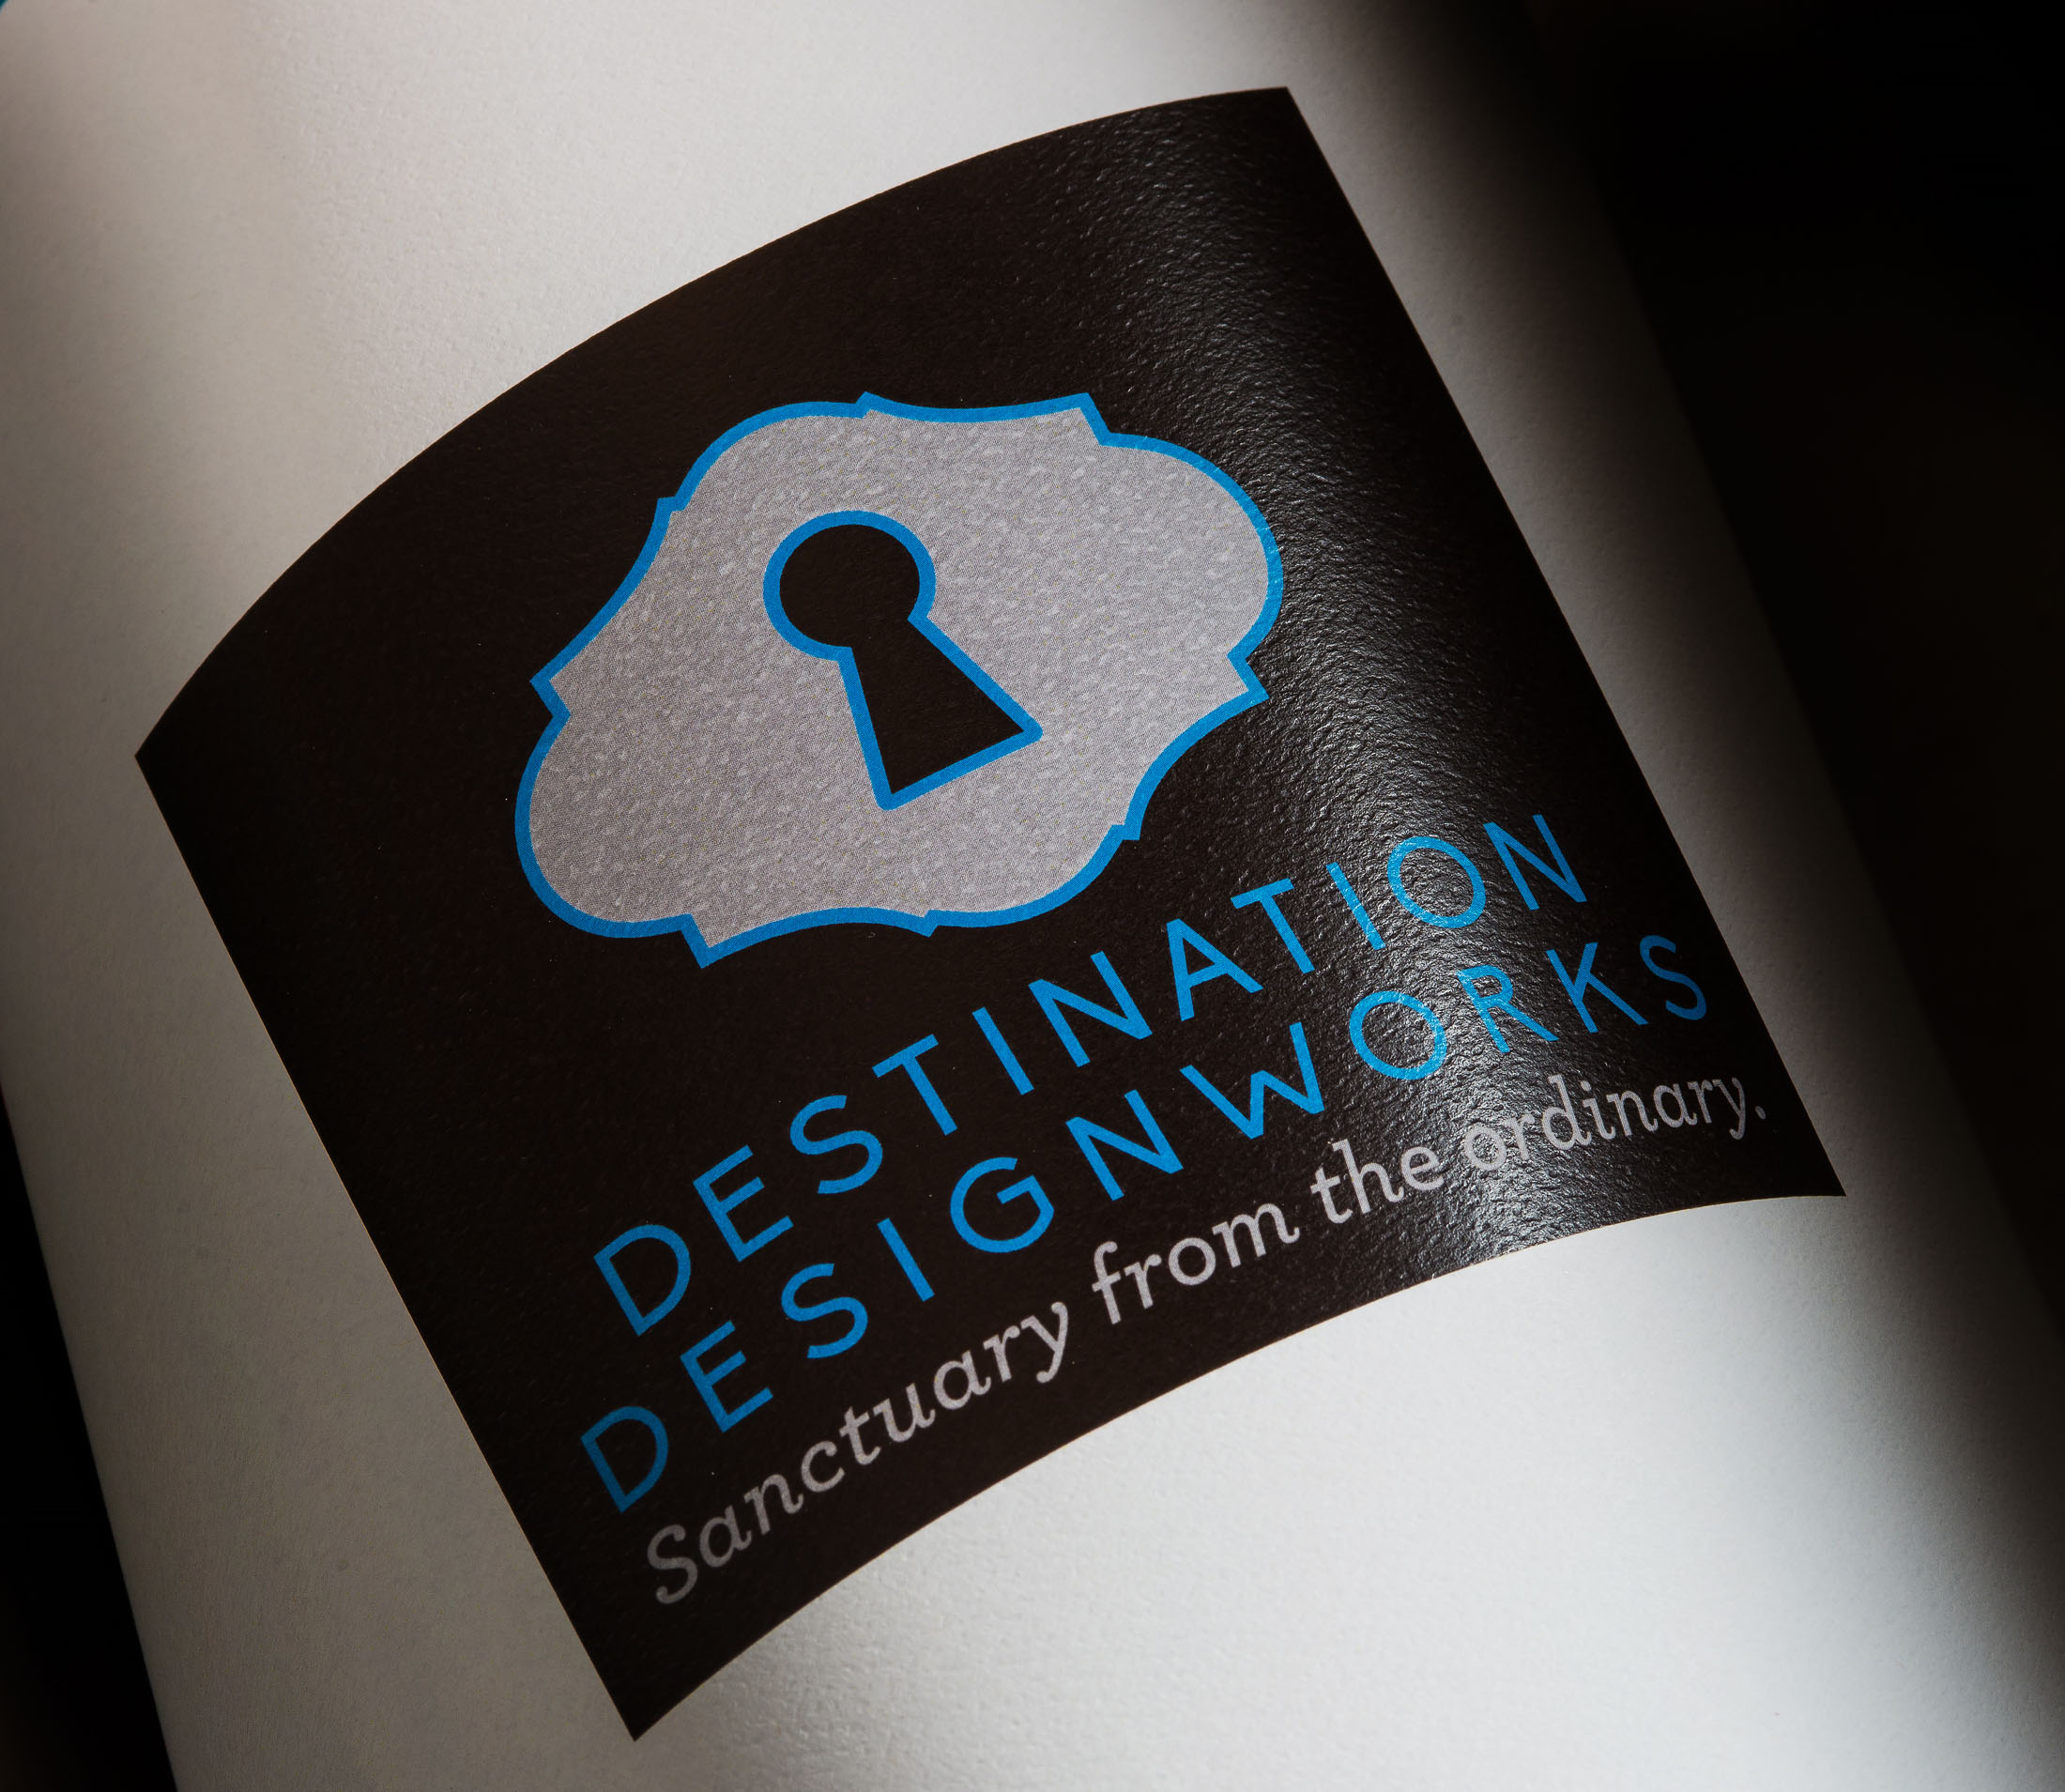 Destination Designworks